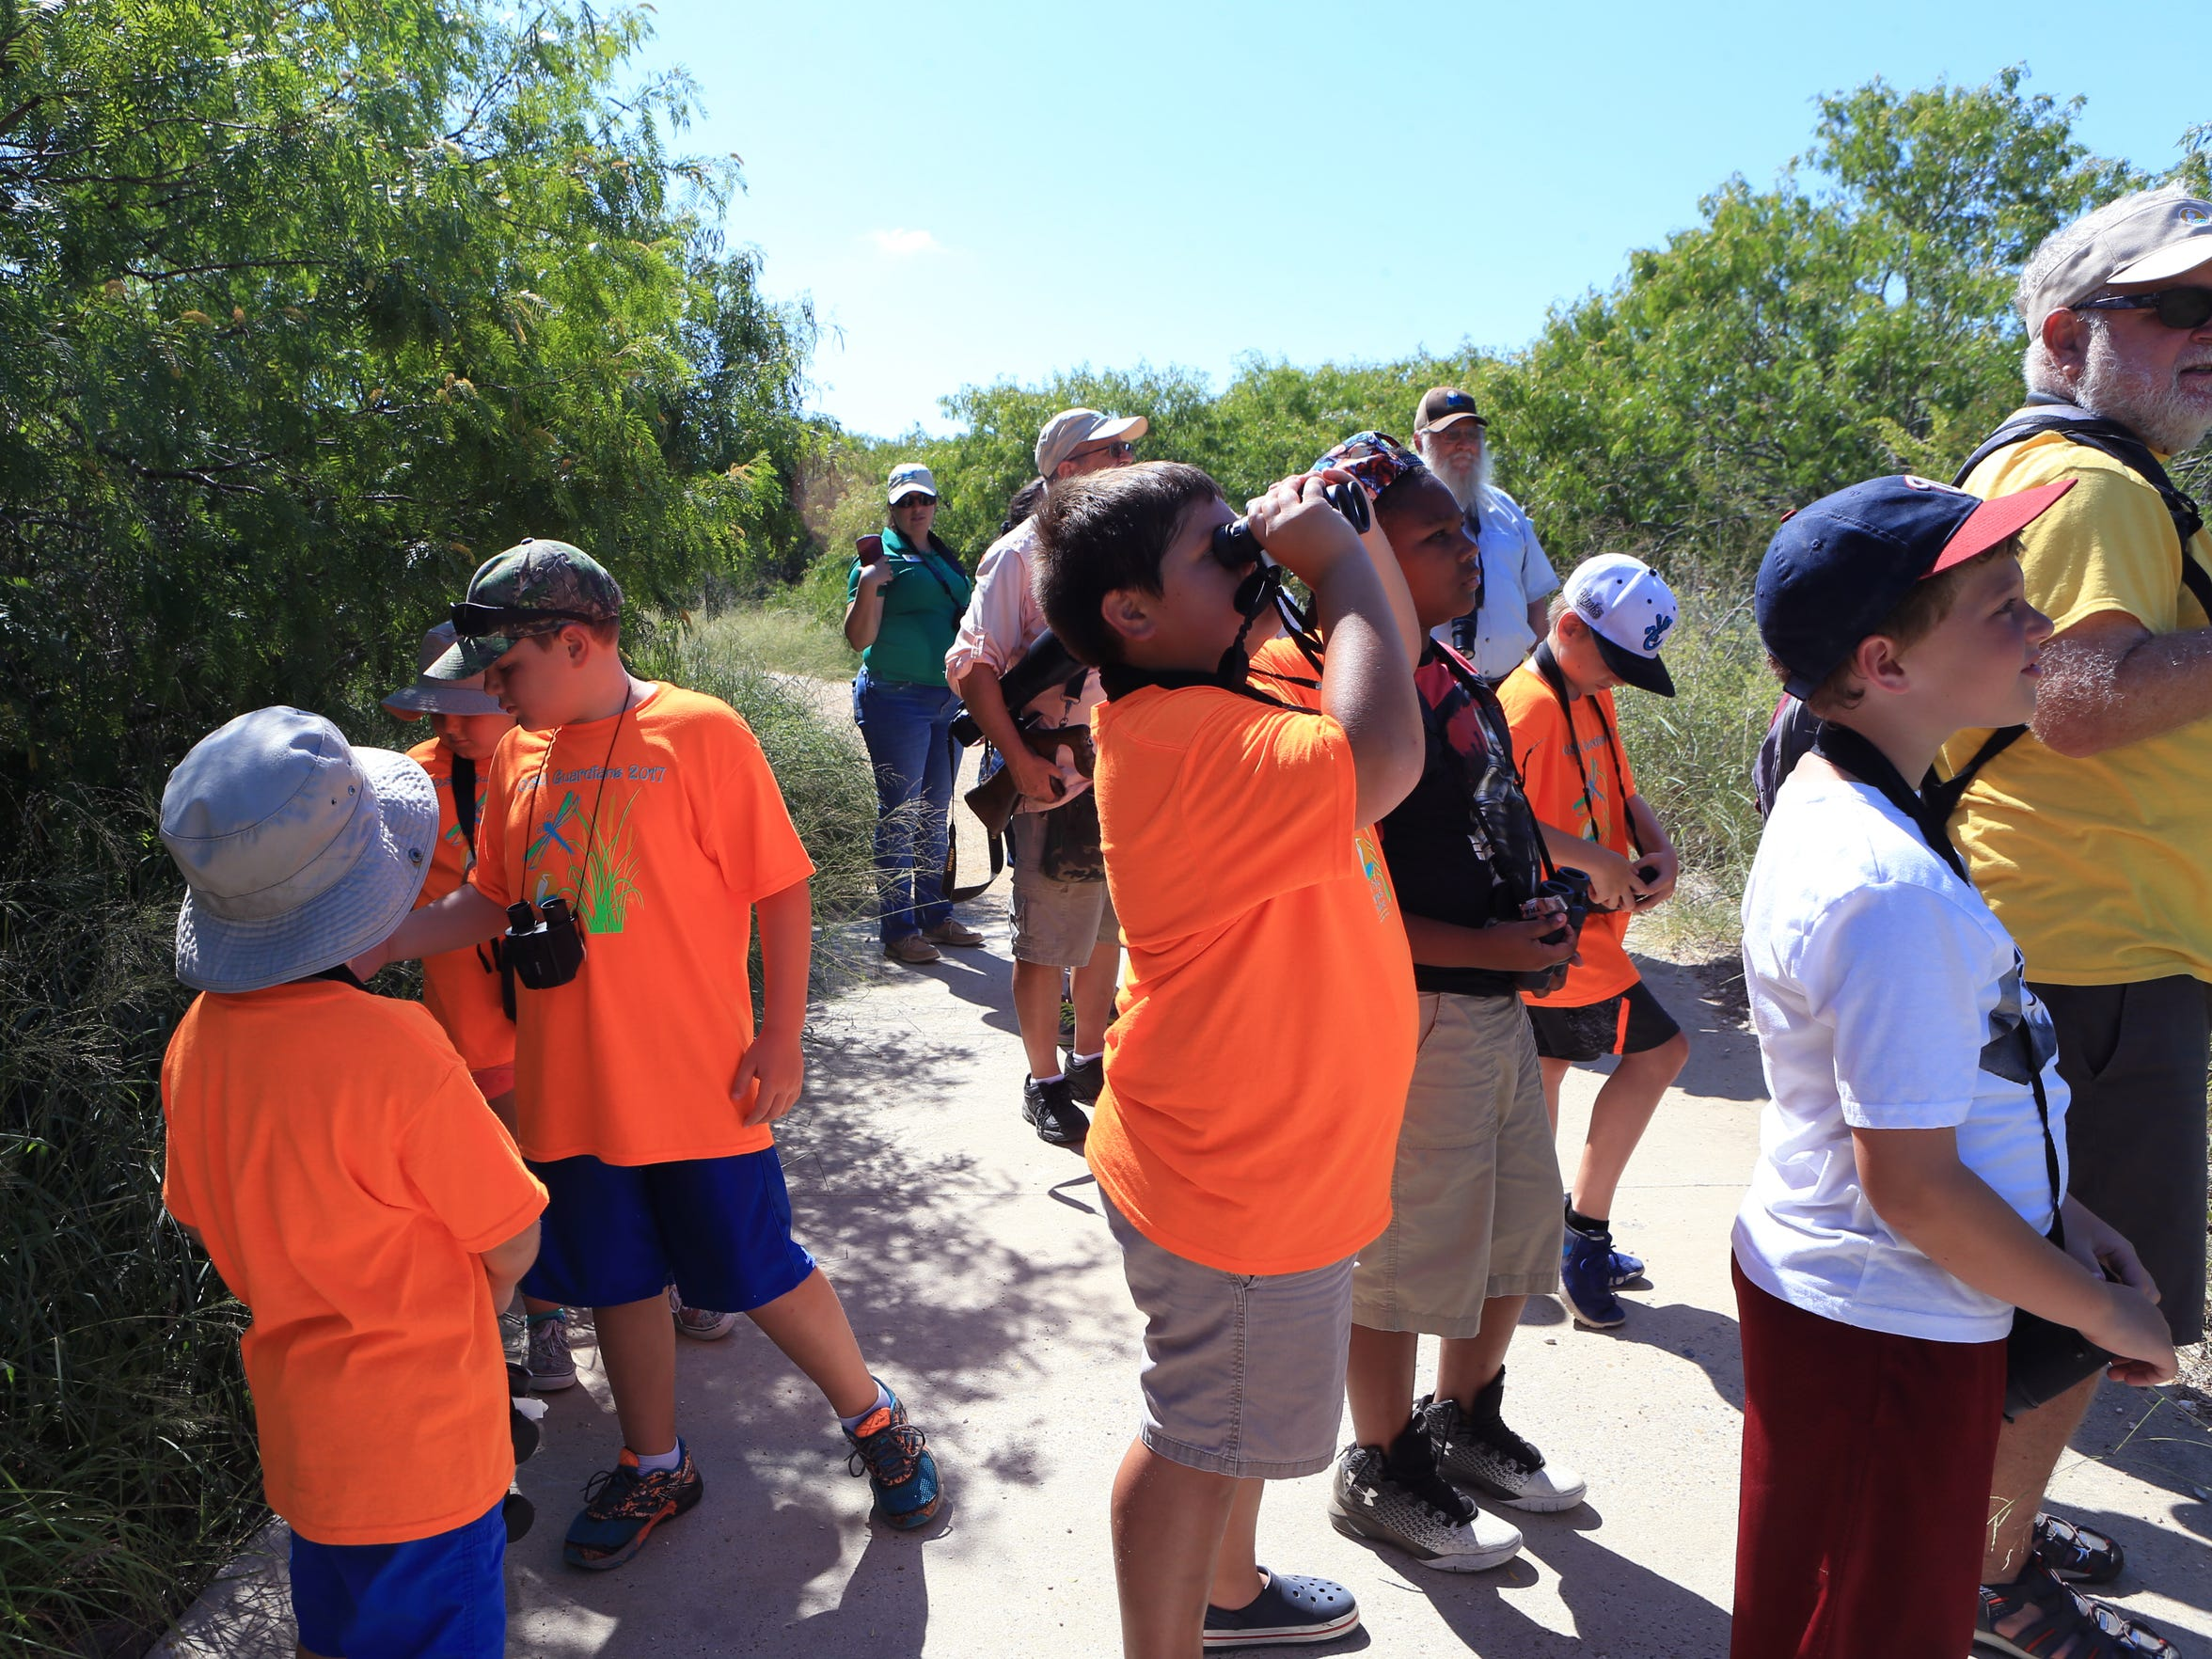 Nature campers participating in the O.S.O. Guardians Camp at the Oso Bay Wetlands Preserve and Learning Center pause during a nature hike to look at birds on Wednesday, June 21, 2017. The theme for this week's camp is I Spy Wildlife. Campers gain and understanding of the environment and wildlife found in the Coastal Bend.